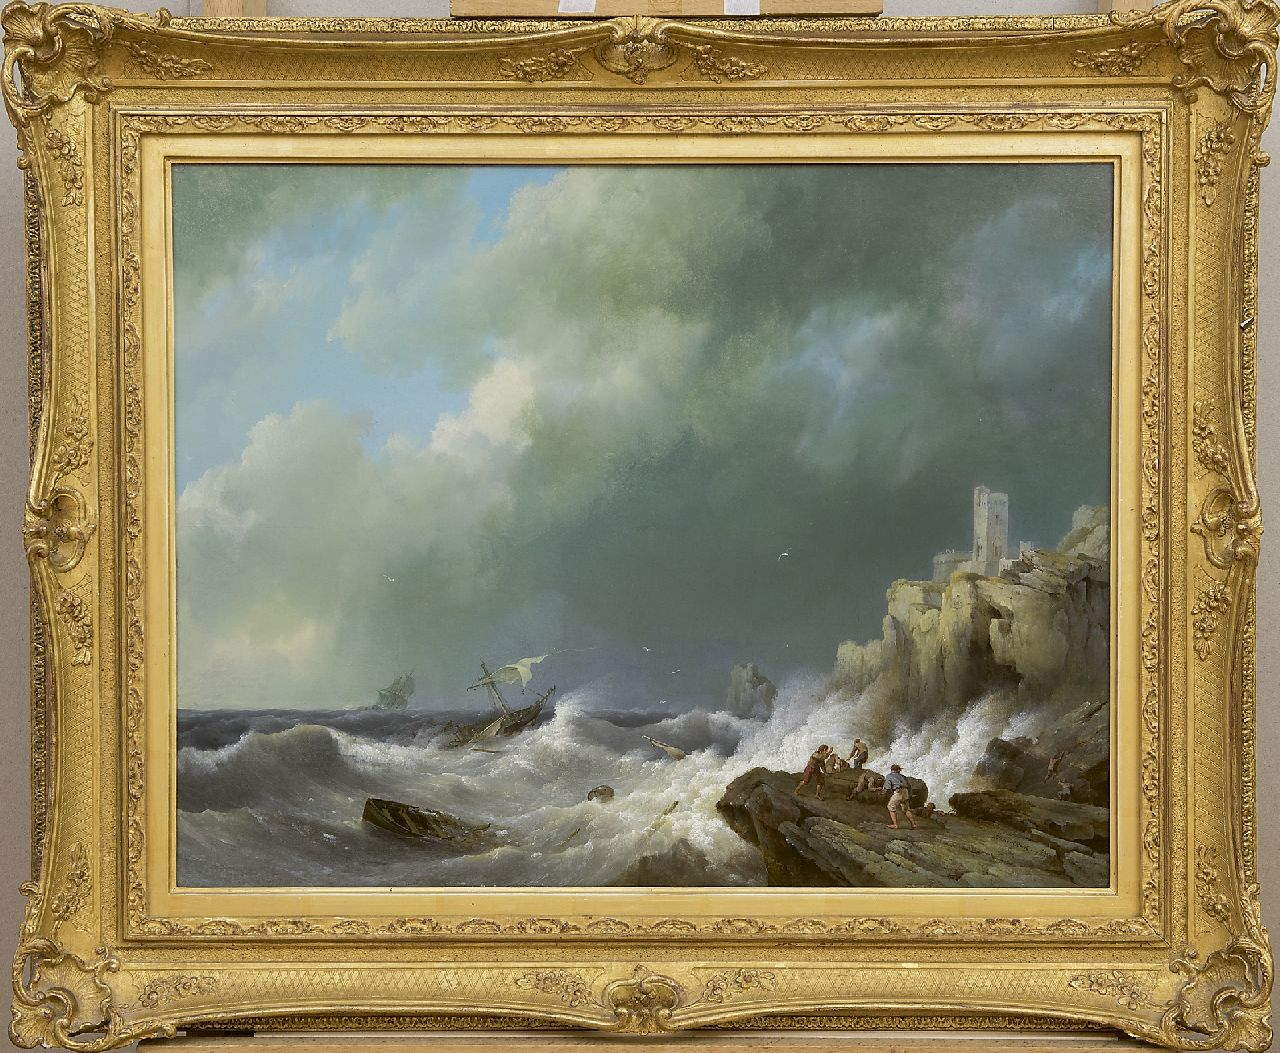 Koekkoek H.  | Hermanus Koekkoek | Paintings offered for sale | Shipwreck near a rocky coast, oil on panel 42.5 x 55.5 cm, signed l.r. and dated 1834